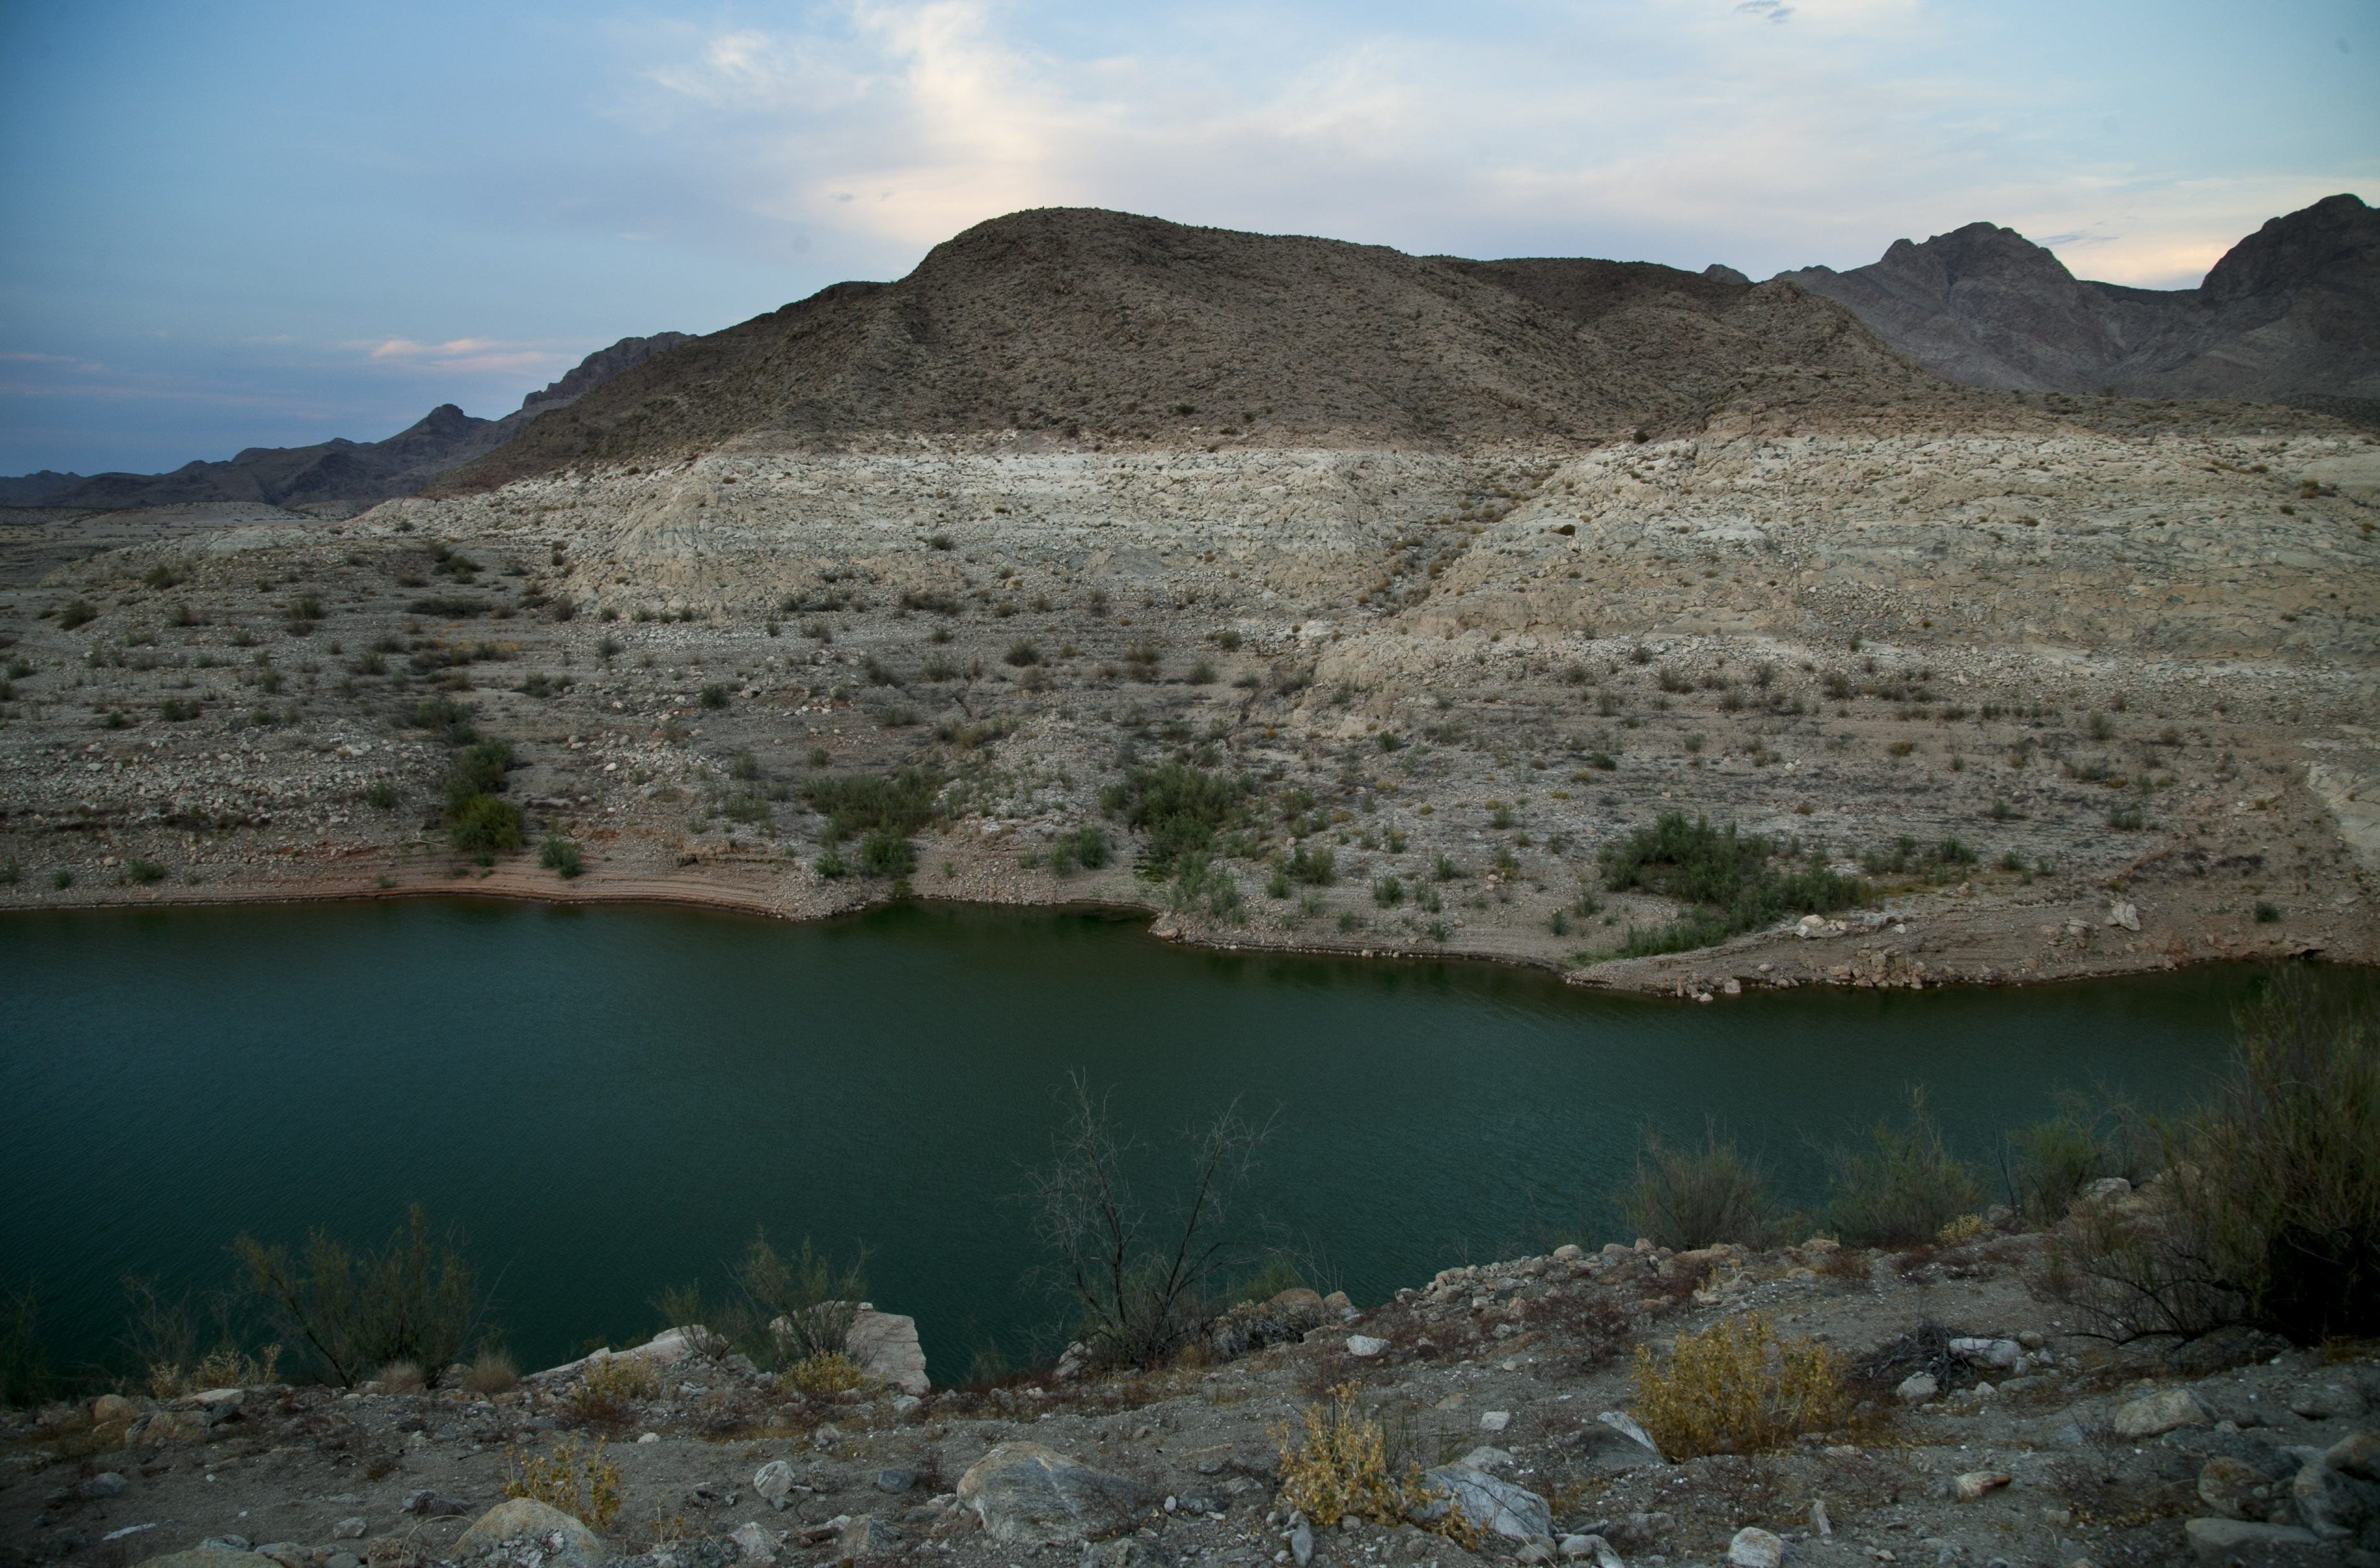 A larger issue looms over short-term Colorado River plan: Climate change   Arizona Central